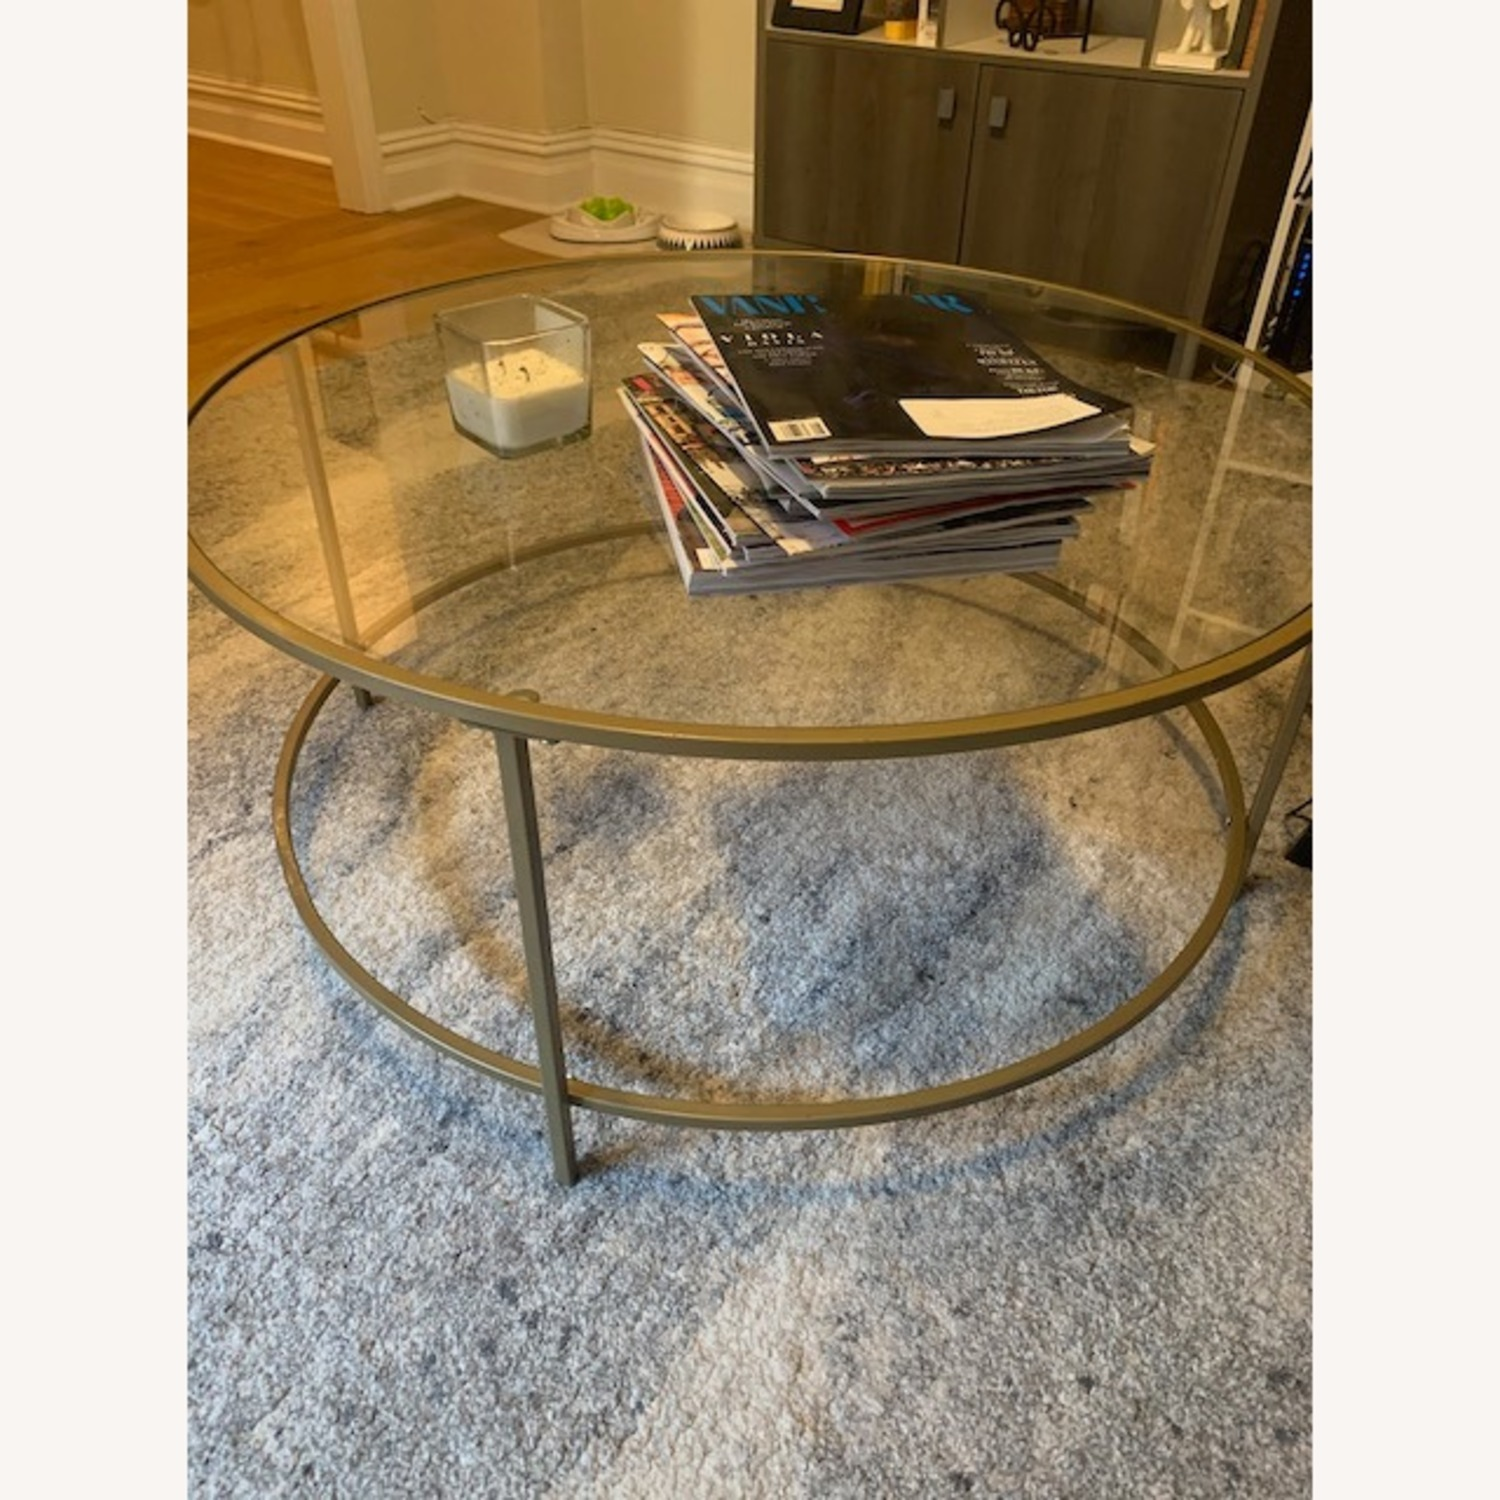 Round Gold Framed Glass Coffee Table - image-1